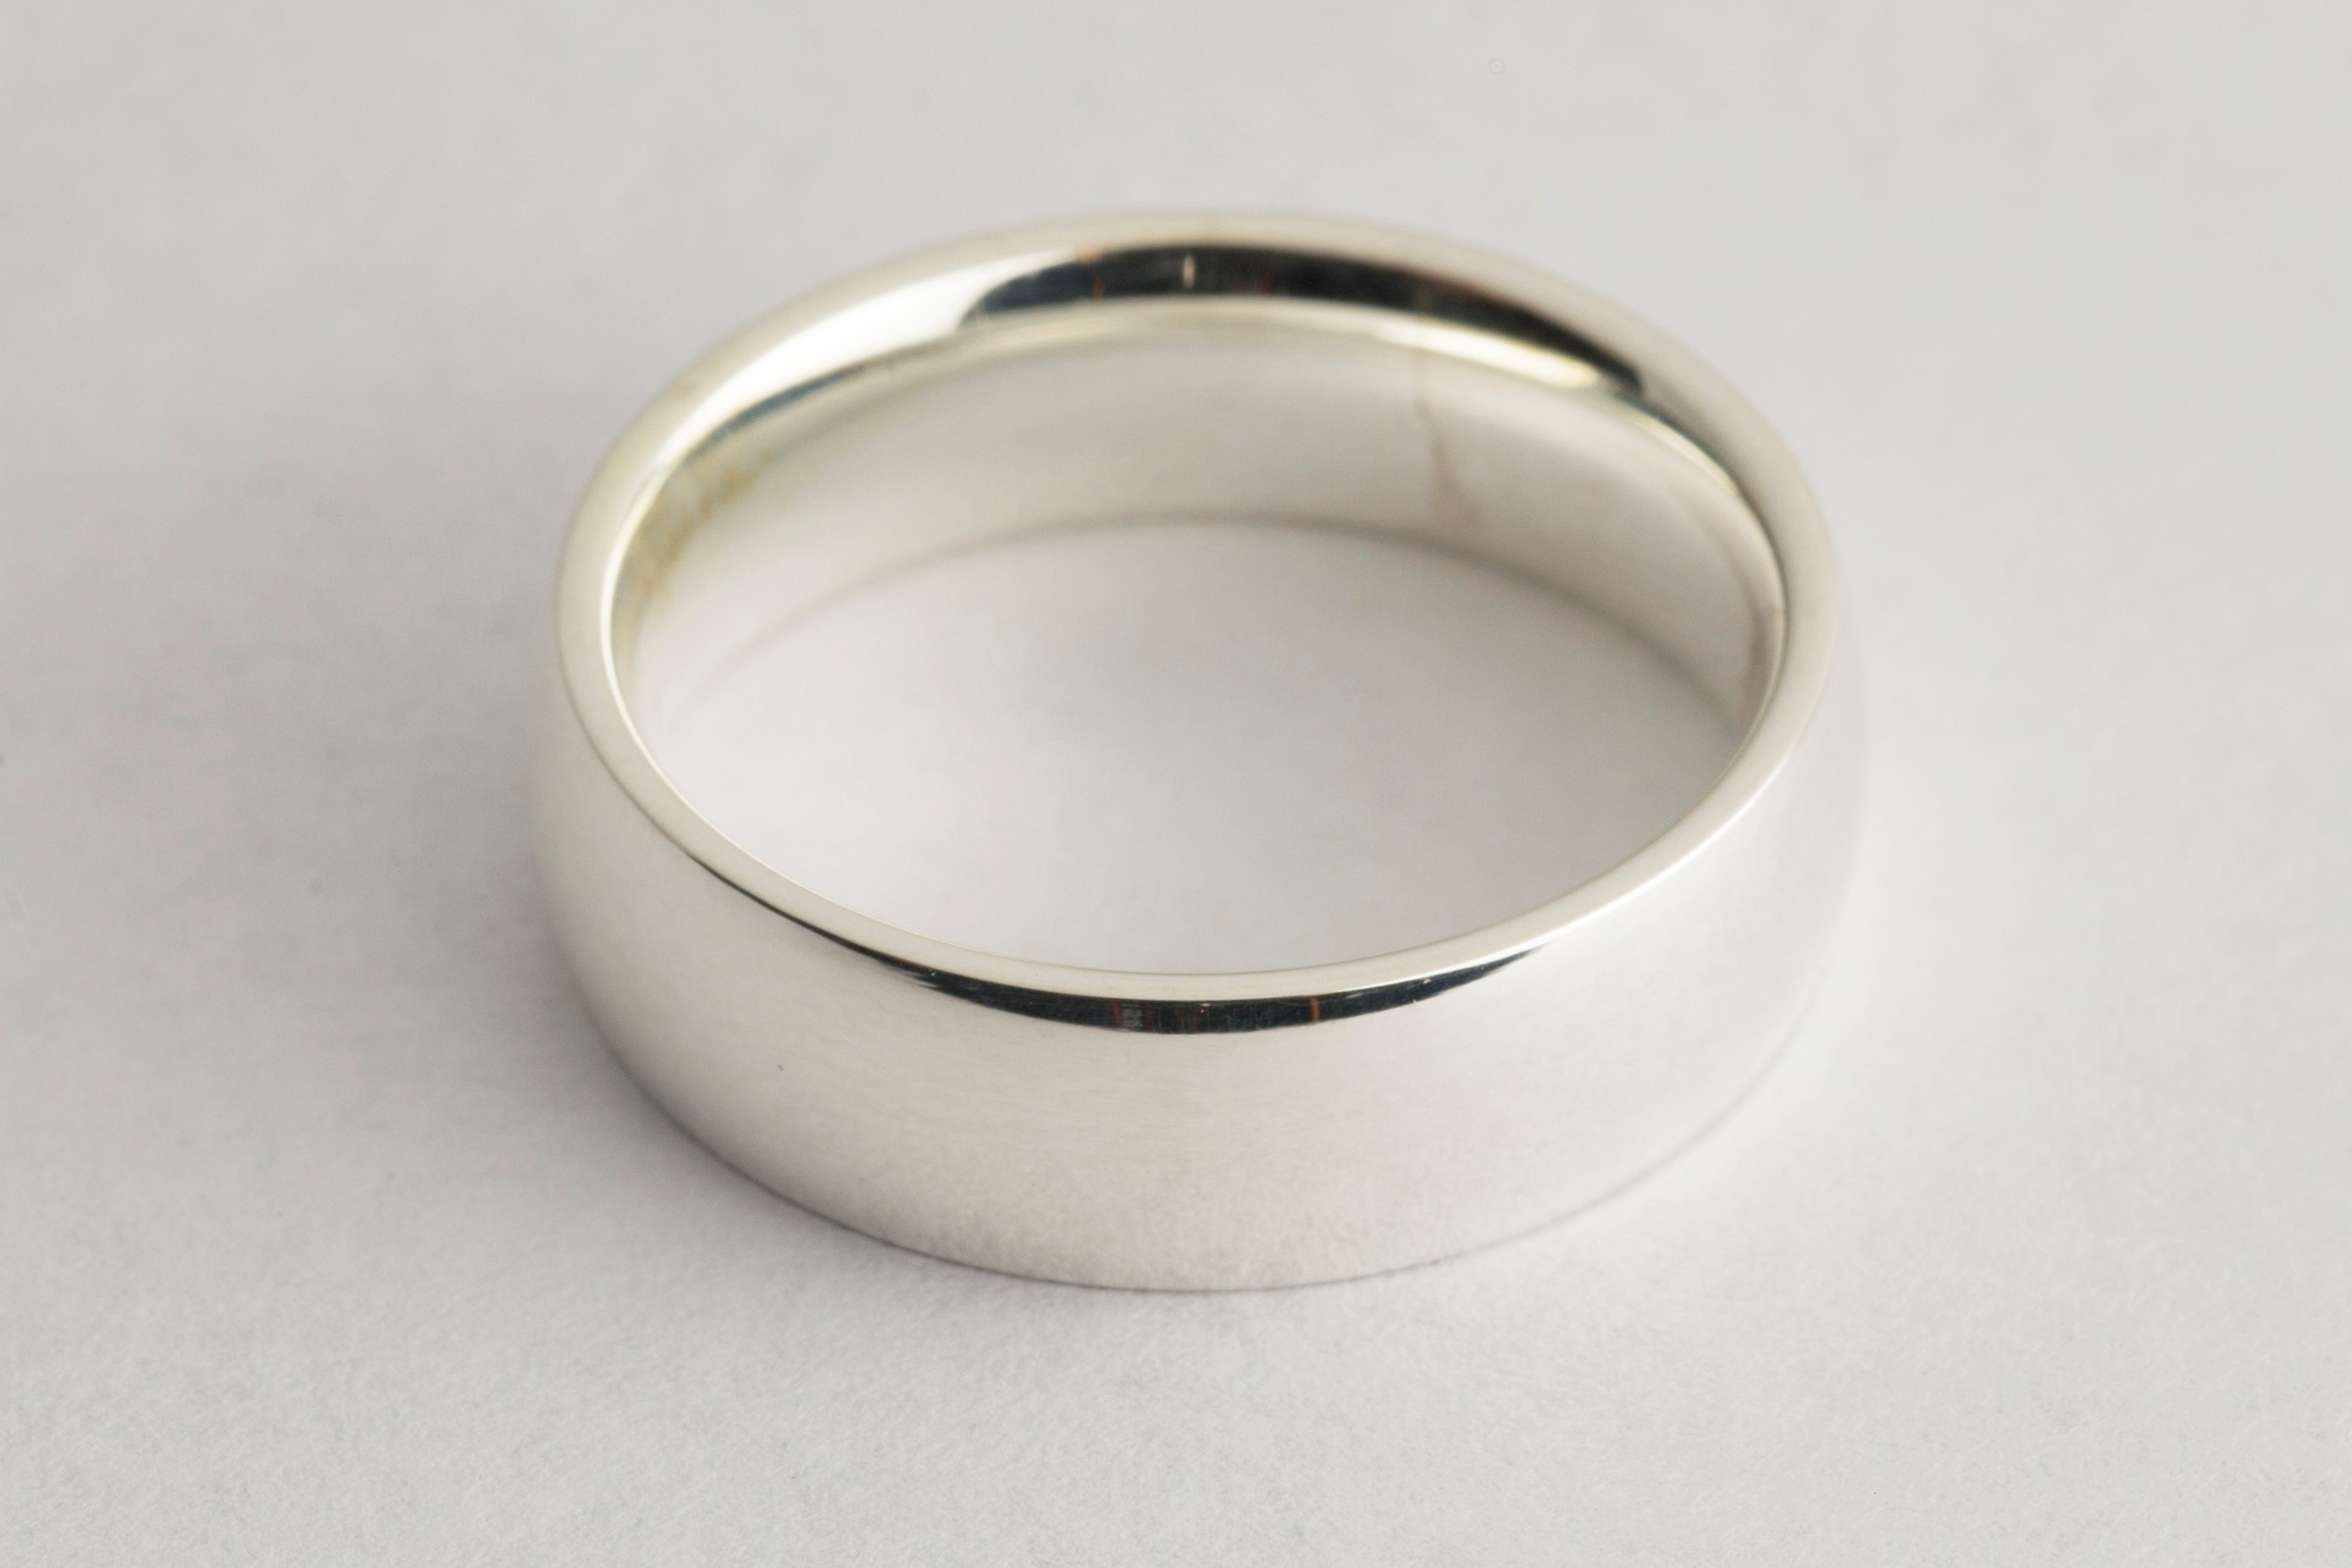 Wedding ring electroplated in platinum plating solution